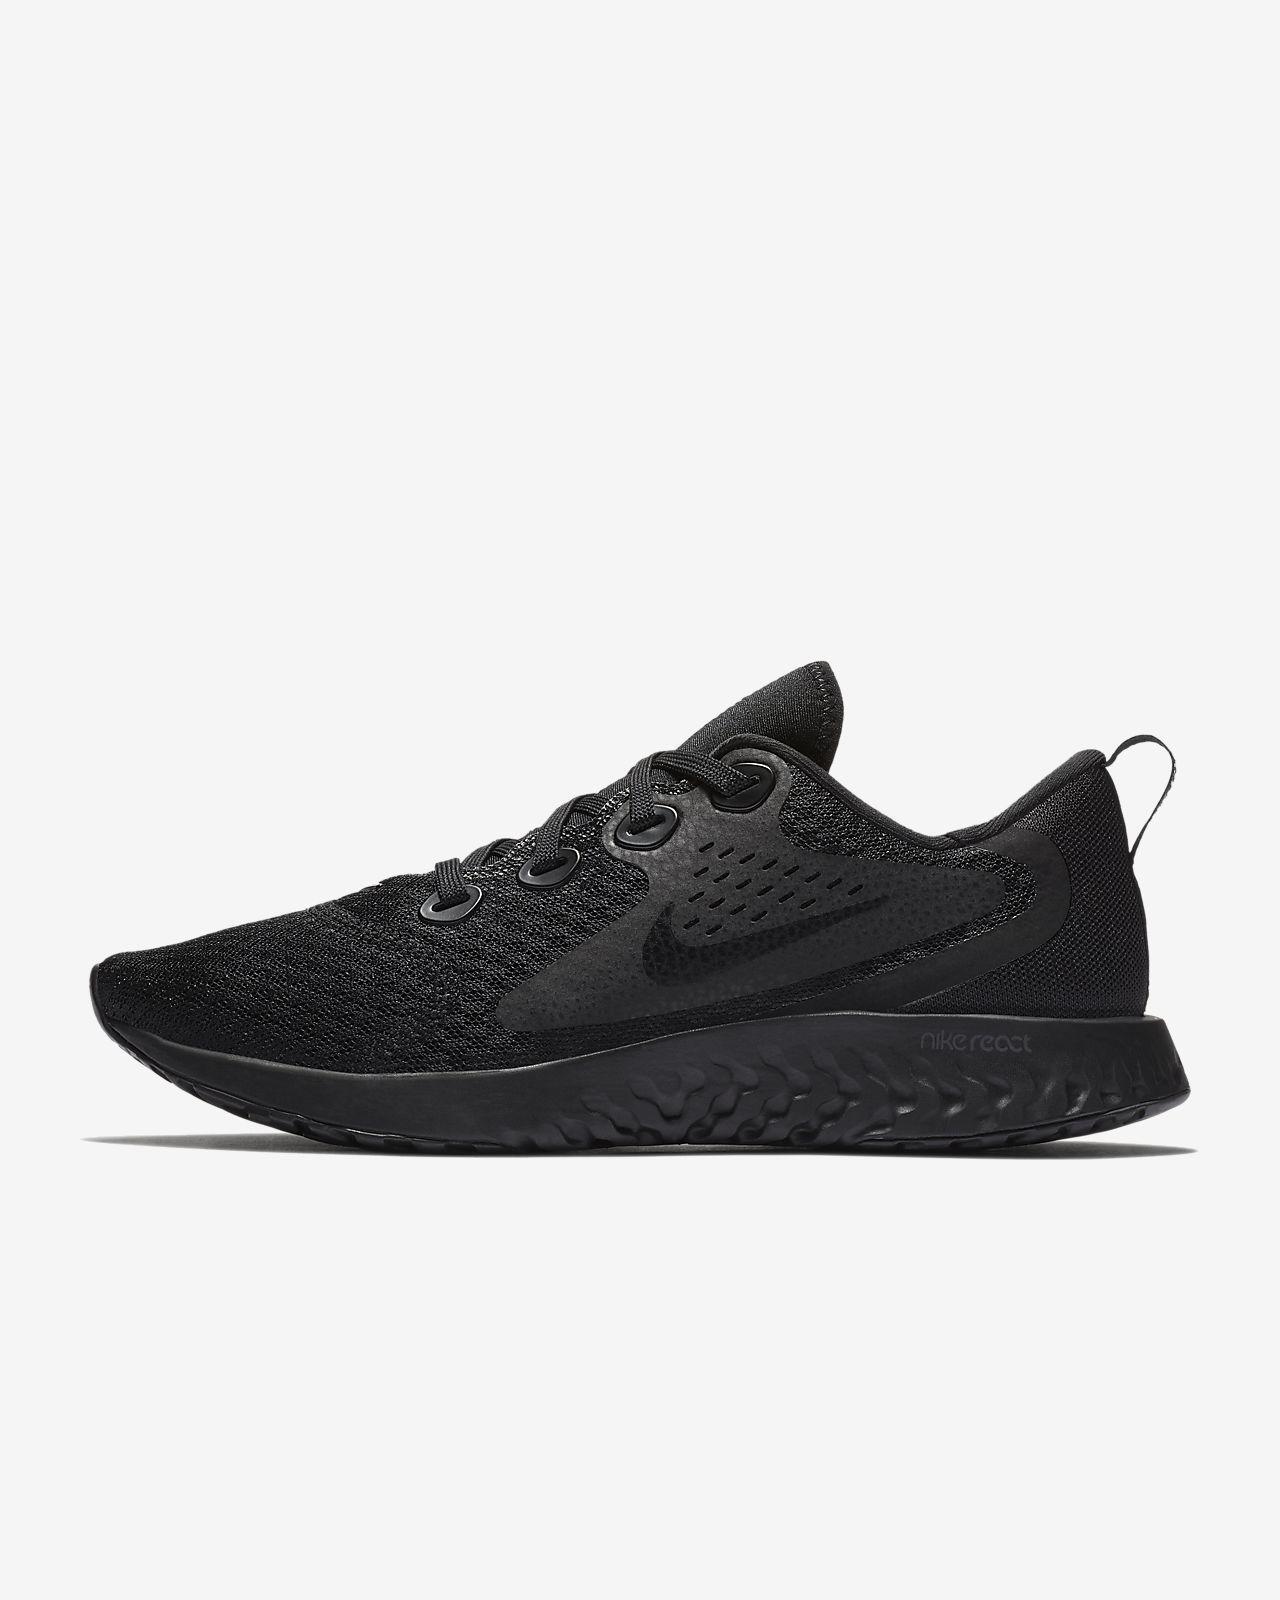 6187aae69d0 Nike Legend React Women s Running Shoe. Nike.com